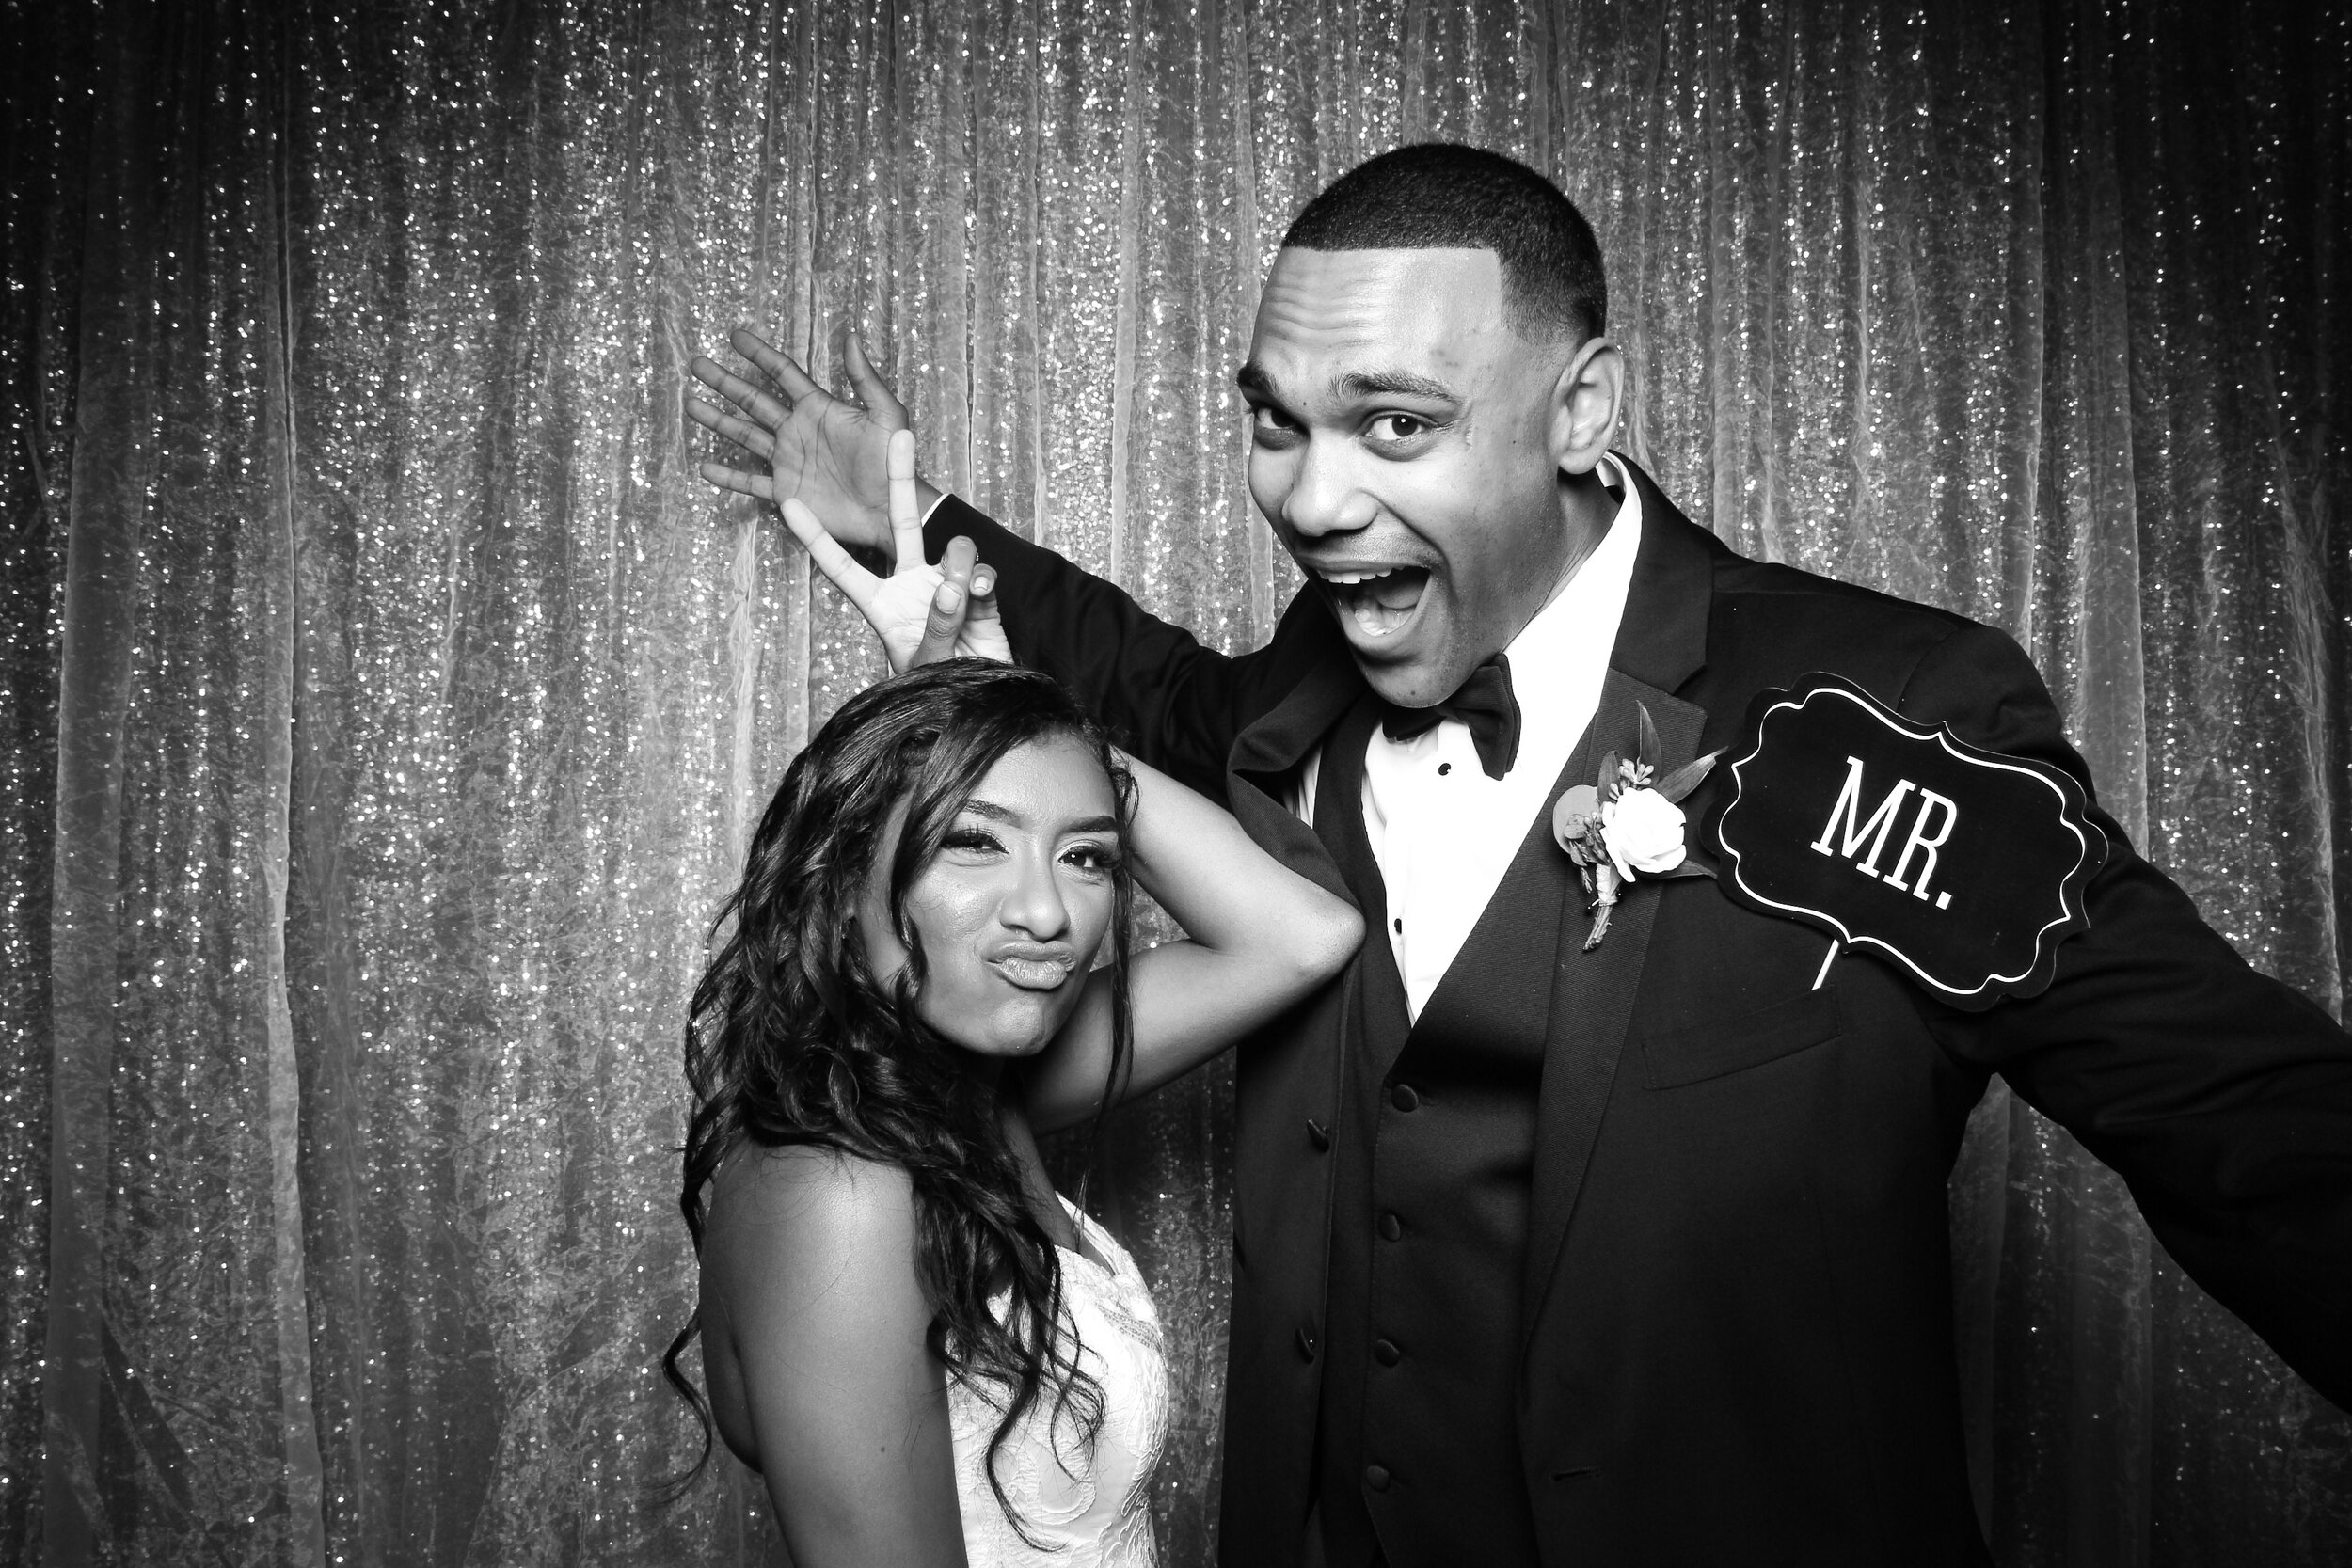 Ravisloe_Country_Club_Wedding_Photo_Booth_17.jpg